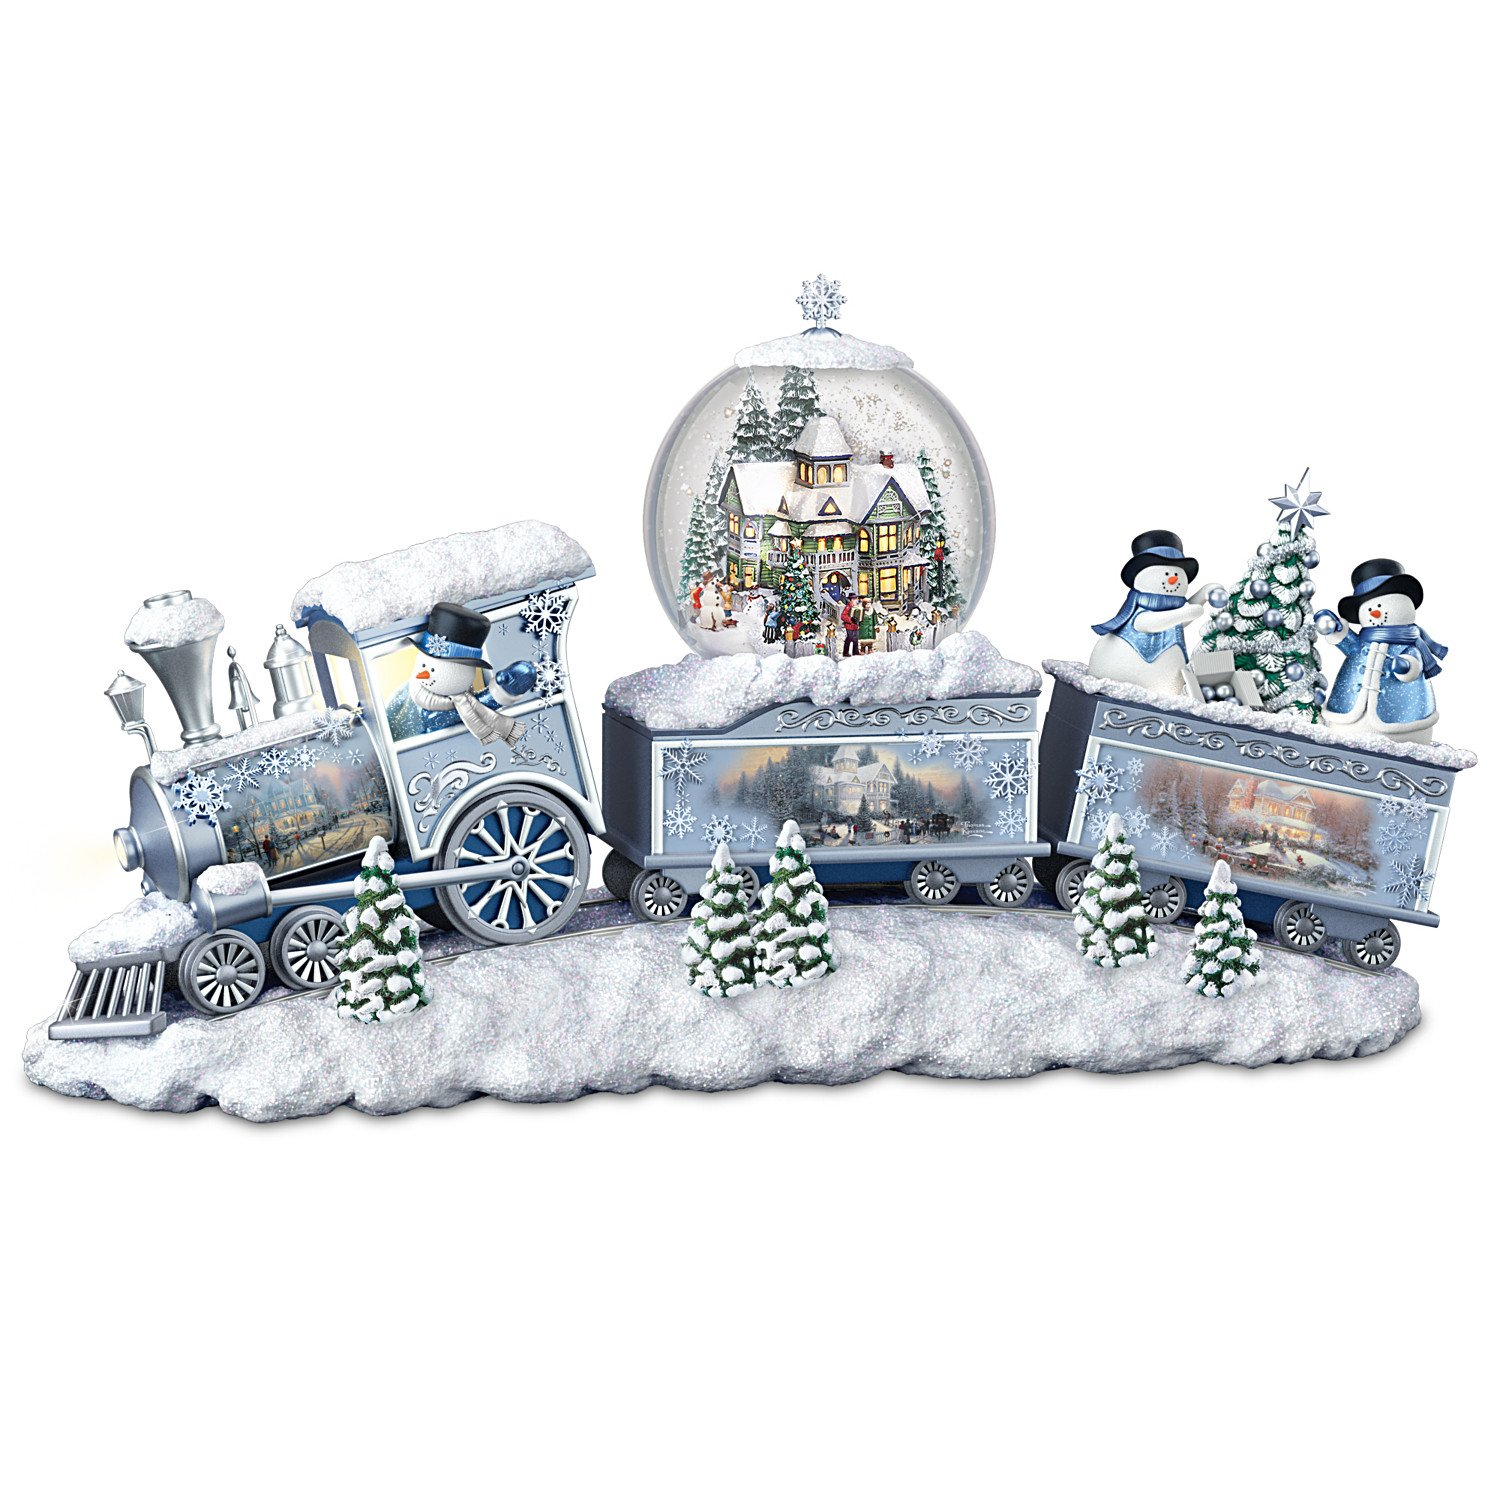 Thomas Kinkade Snowfall Express Light Up Musical Snowman Snowglobe Train by The Bradford Exchange by Bradford Exchange